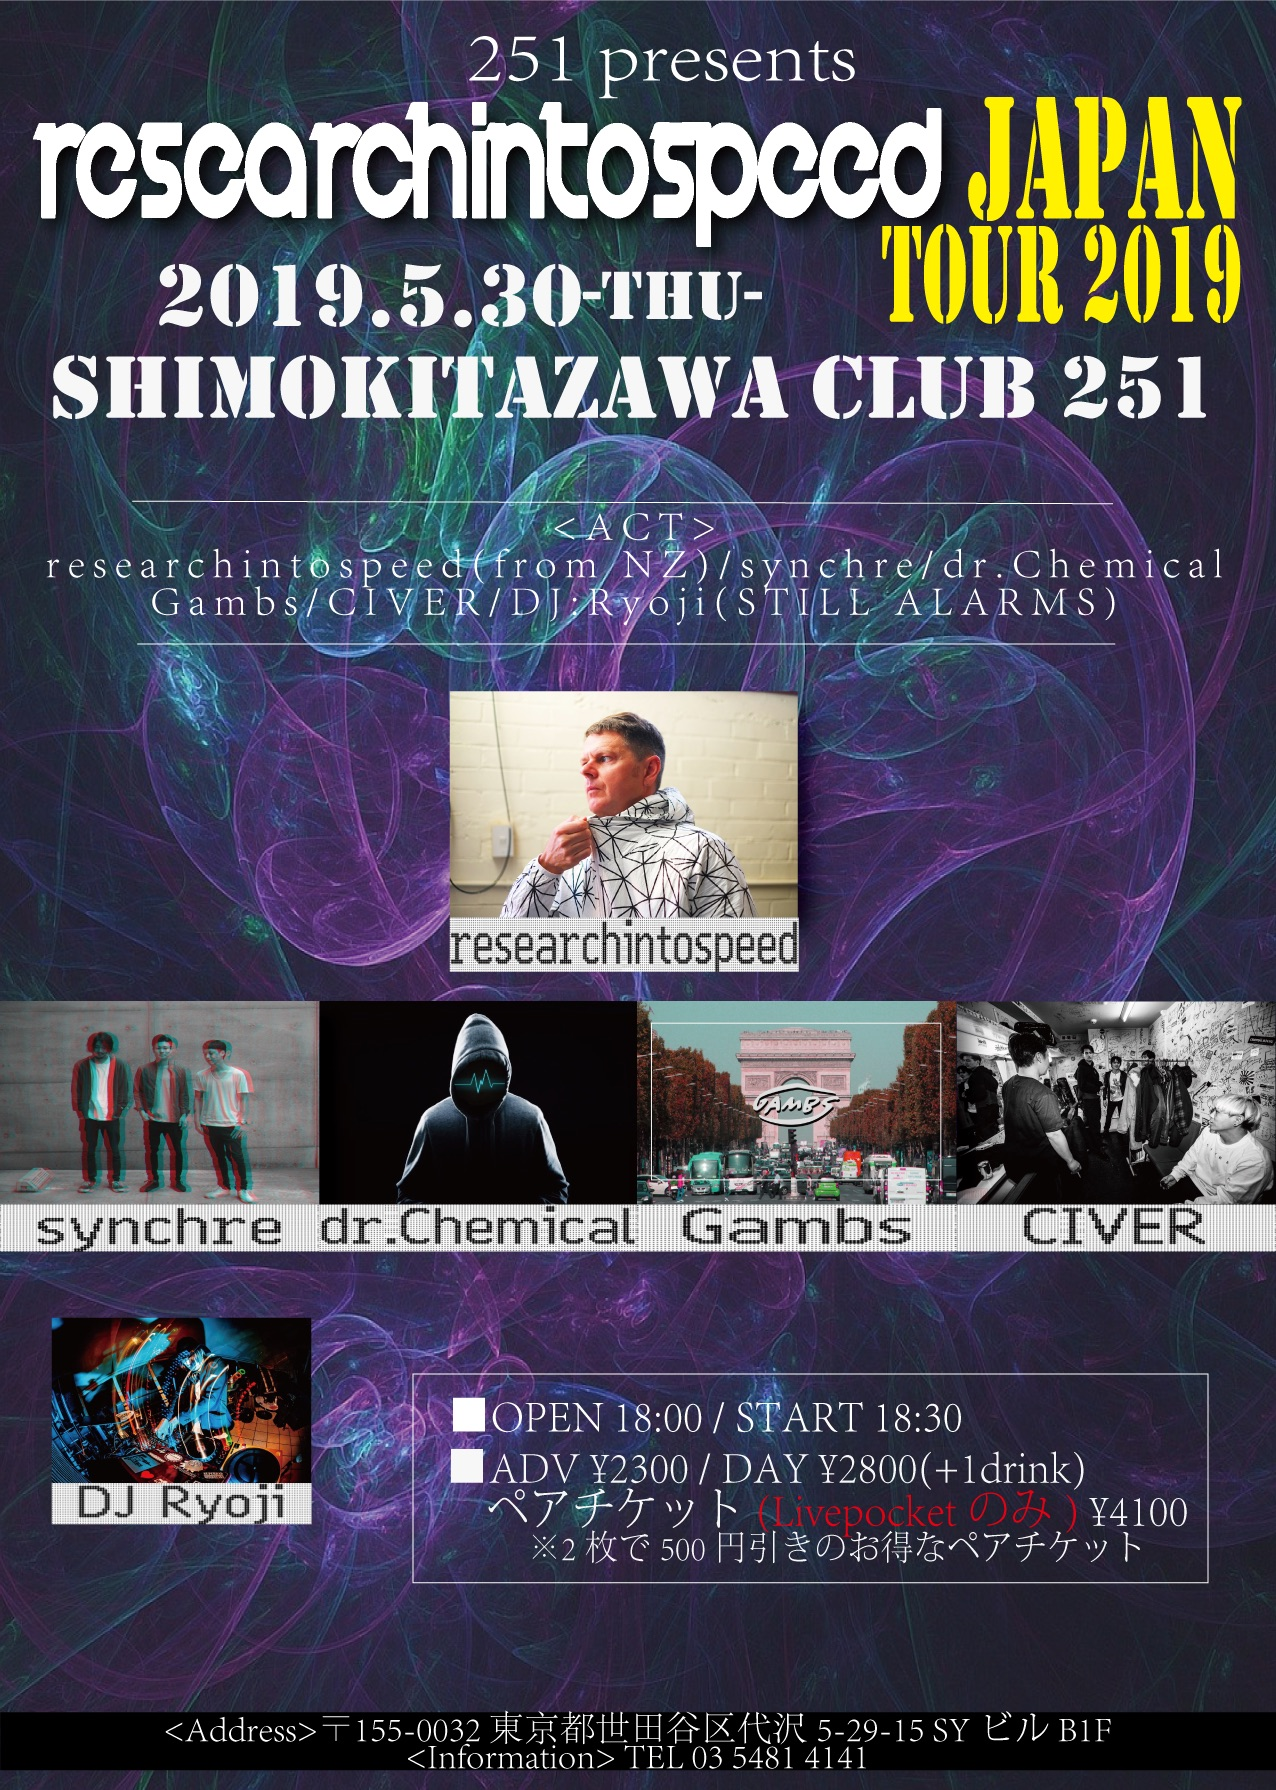 251 presents researchintospeed JAPAN TOUR 2019